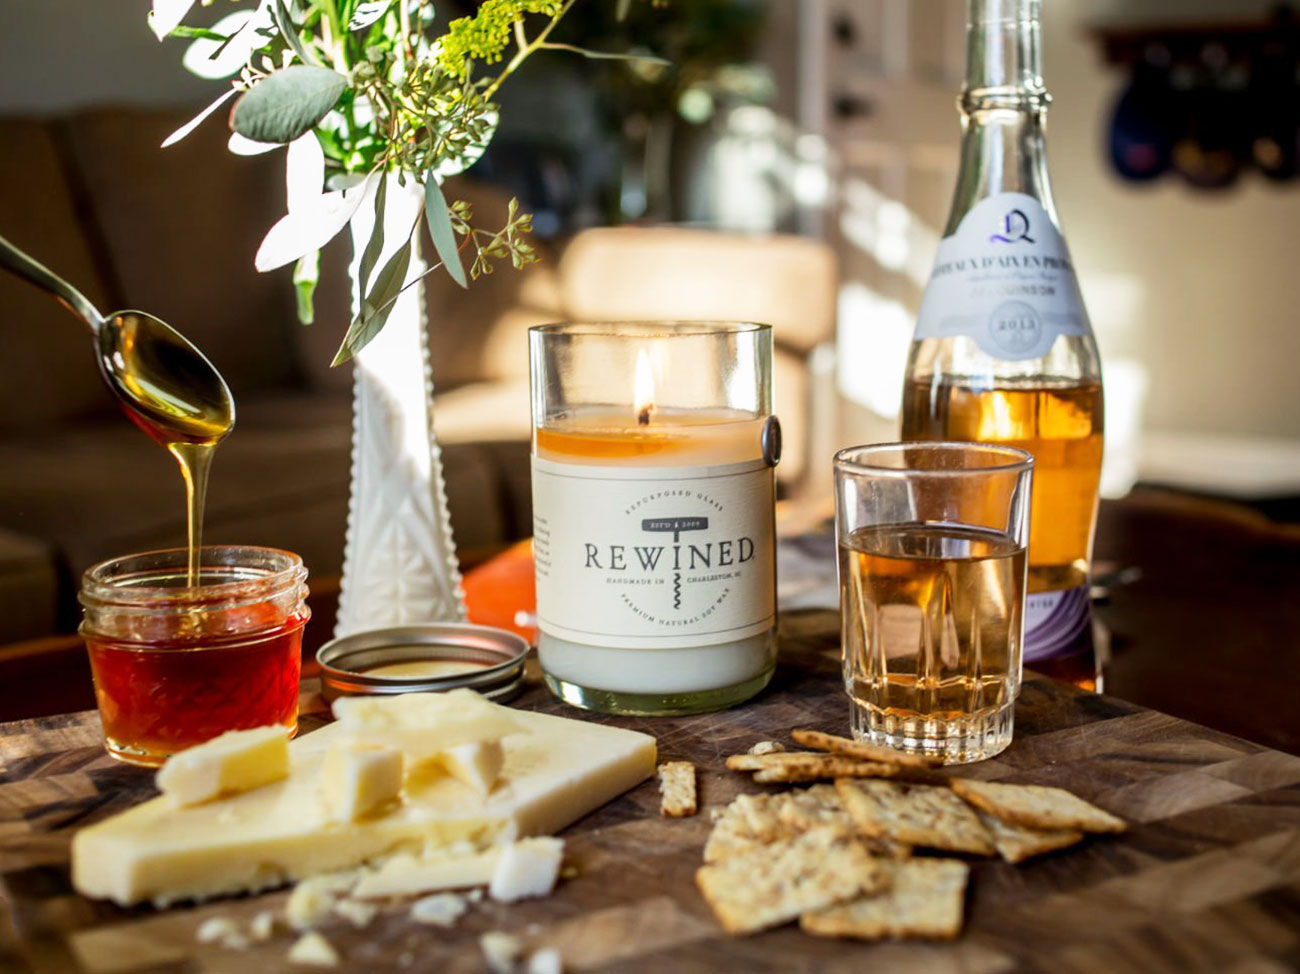 10 Food-Scented Candle Gifts That Actually Smell Amazing